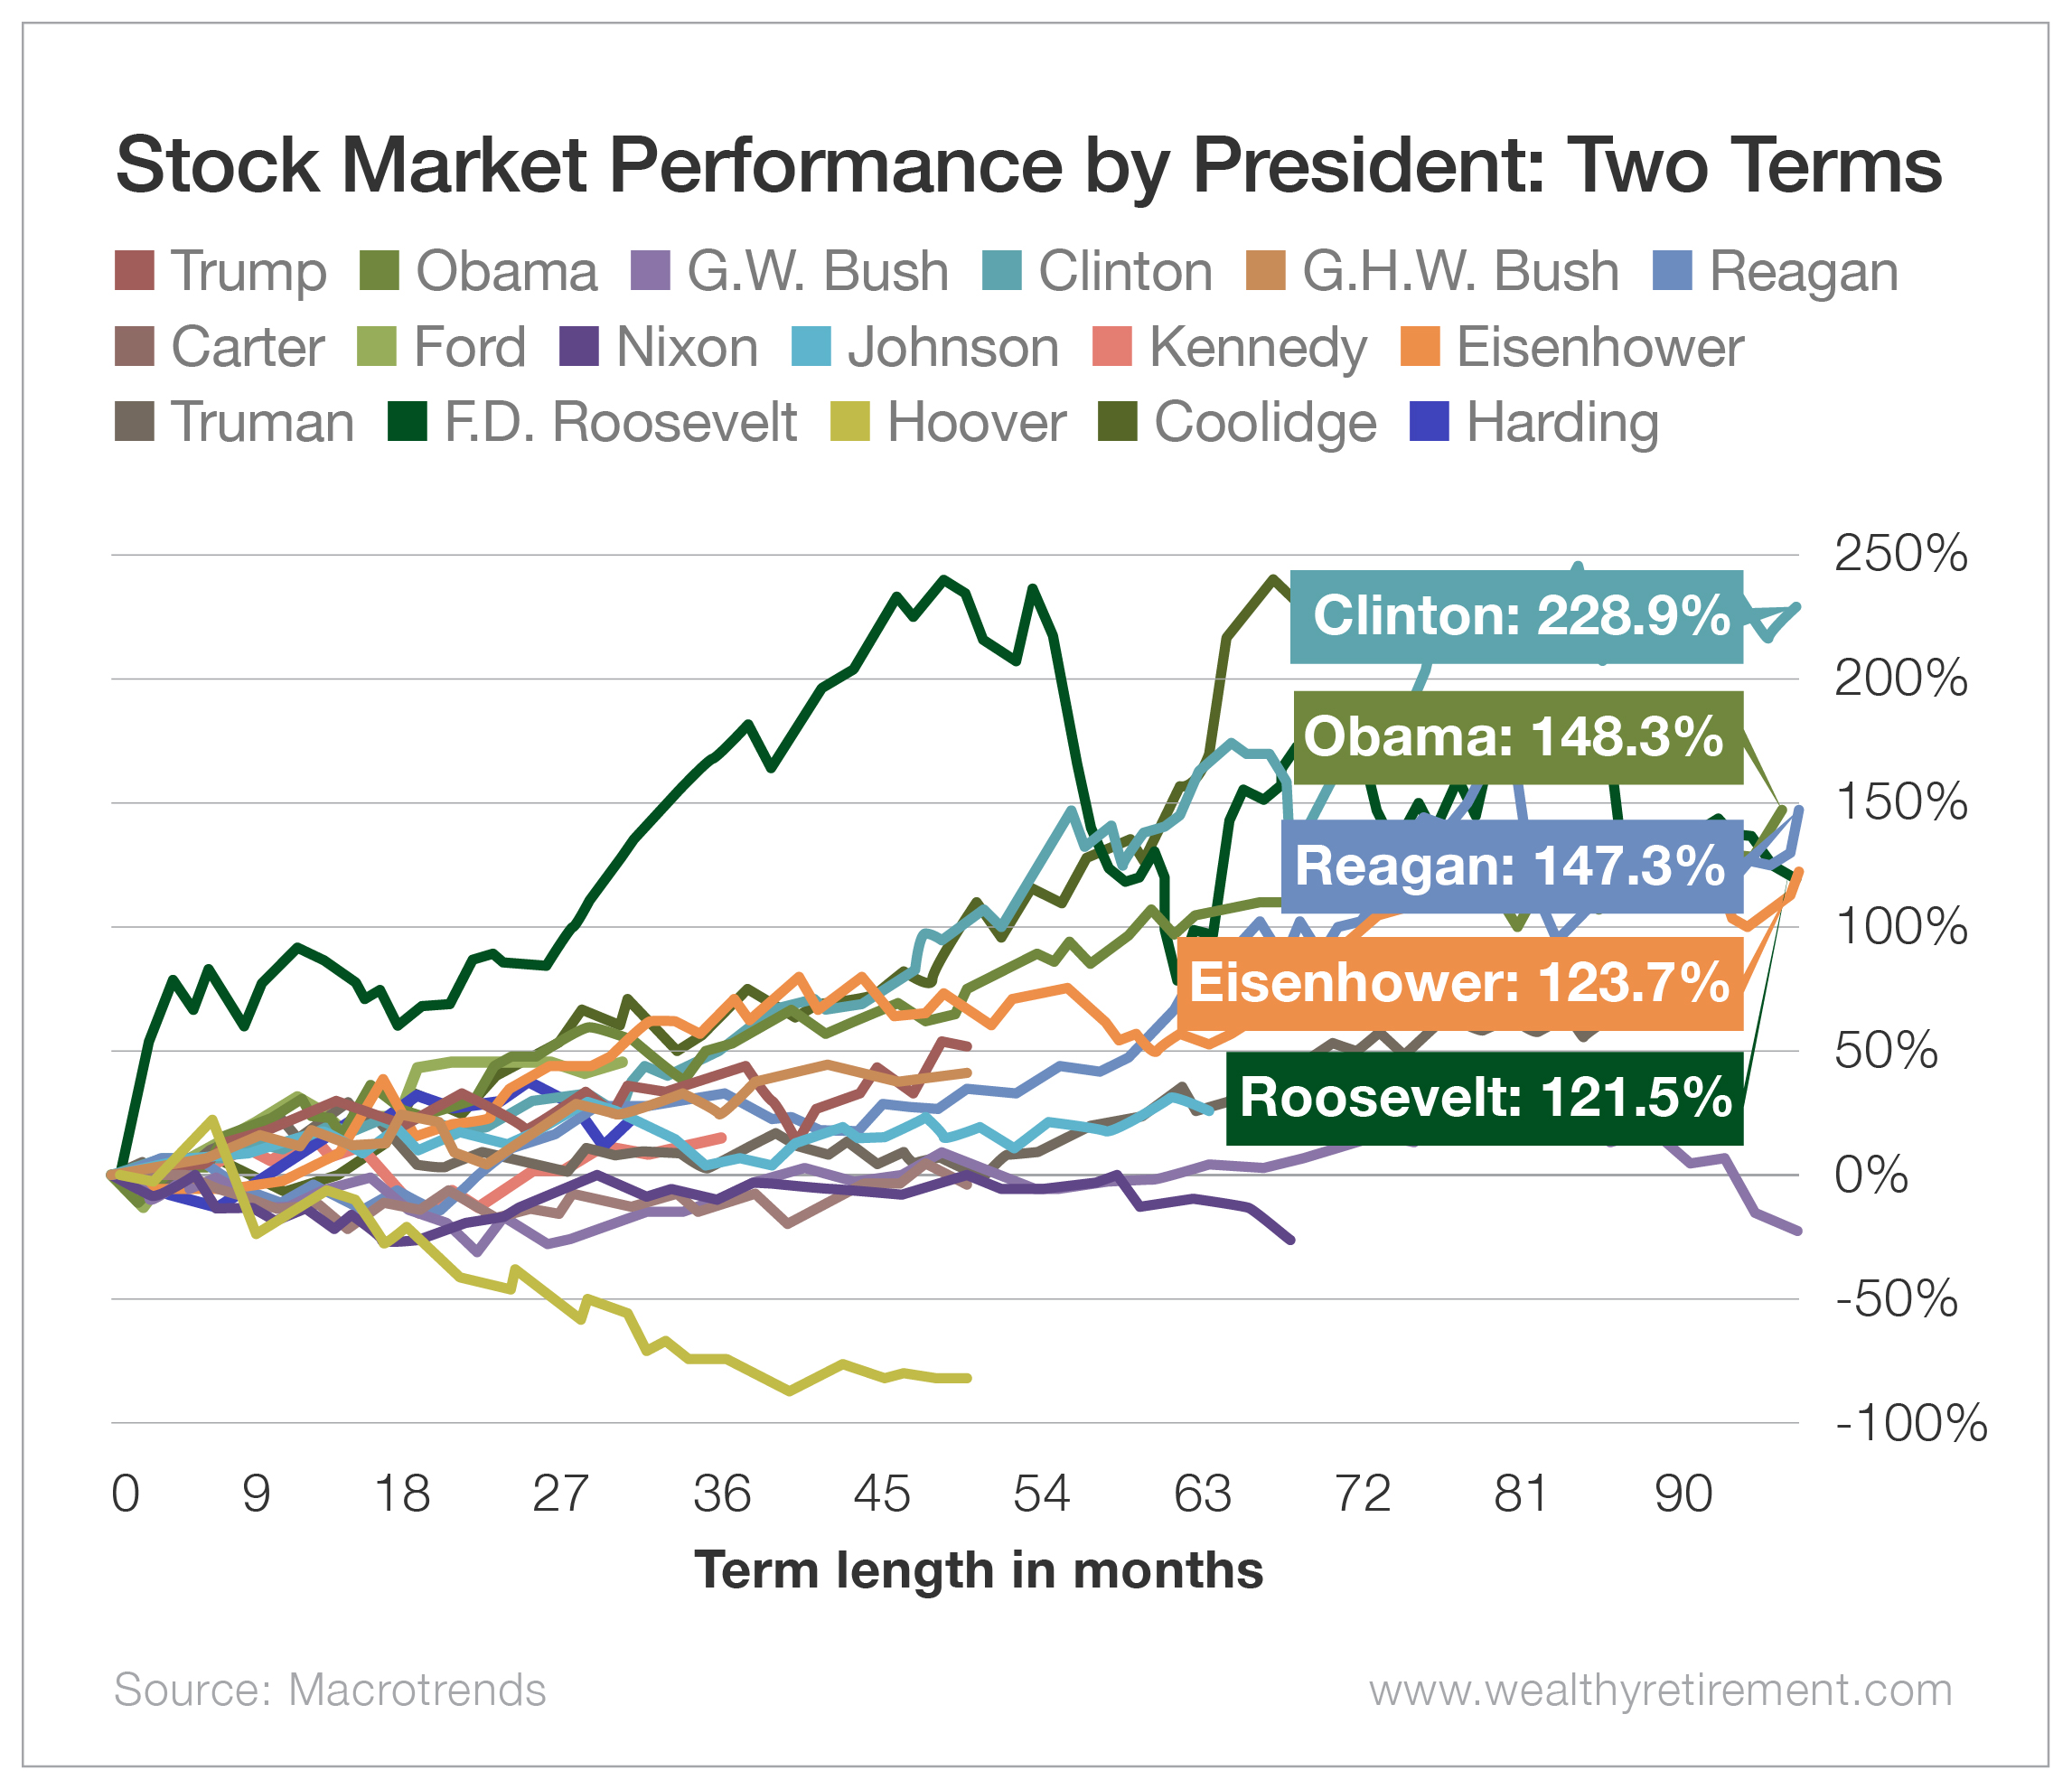 Stock Market Performance by President: Two Terms